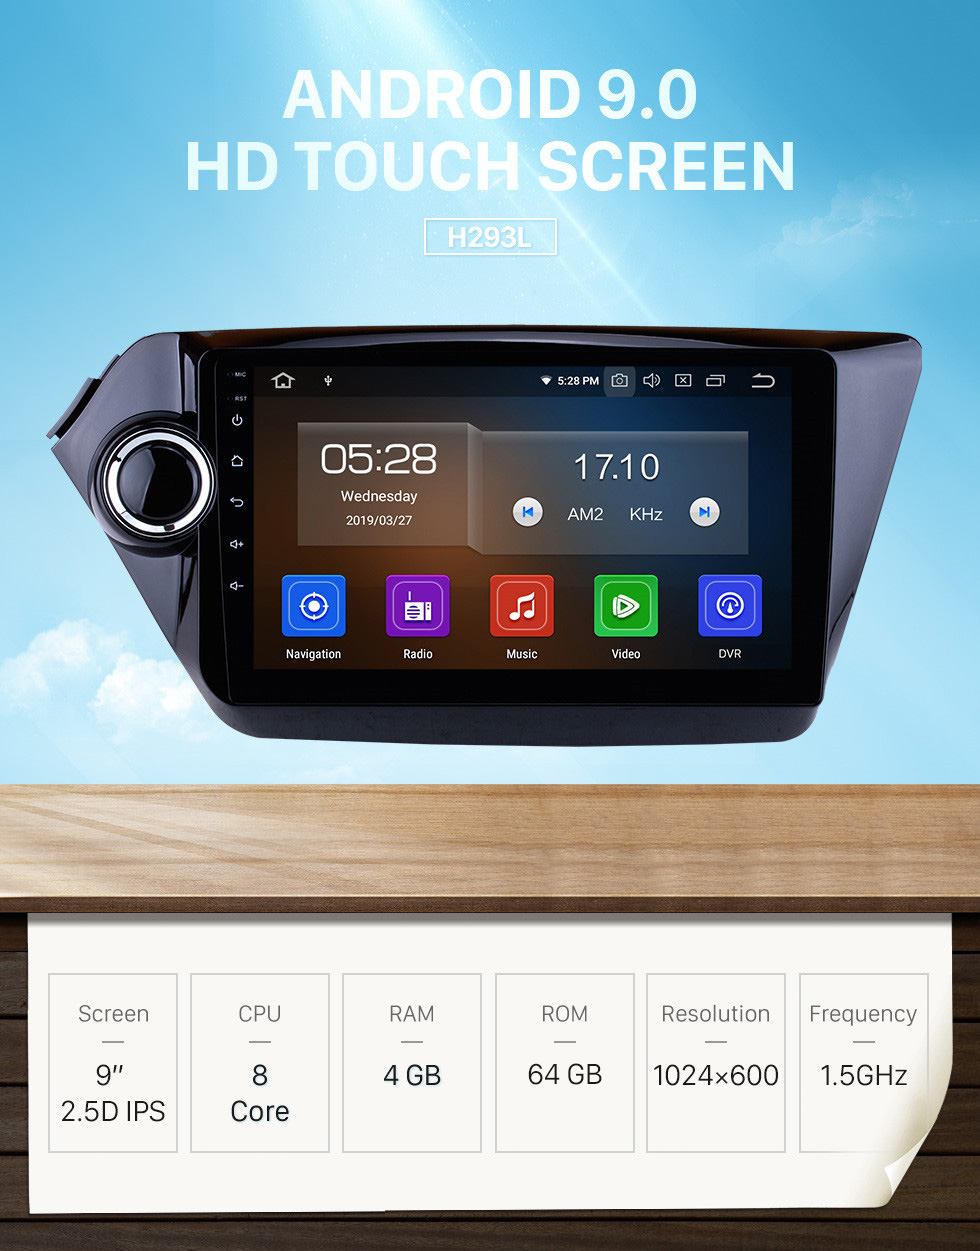 Seicane 9 Inch Aftermarket Android 9.0 Radio GPS Navigation system For 2012-2015 KIA K2 RIO HD Touch Screen TPMS DVR OBD II Steering Wheel Control USB Bluetooth WiFi Video AUX Rear camera